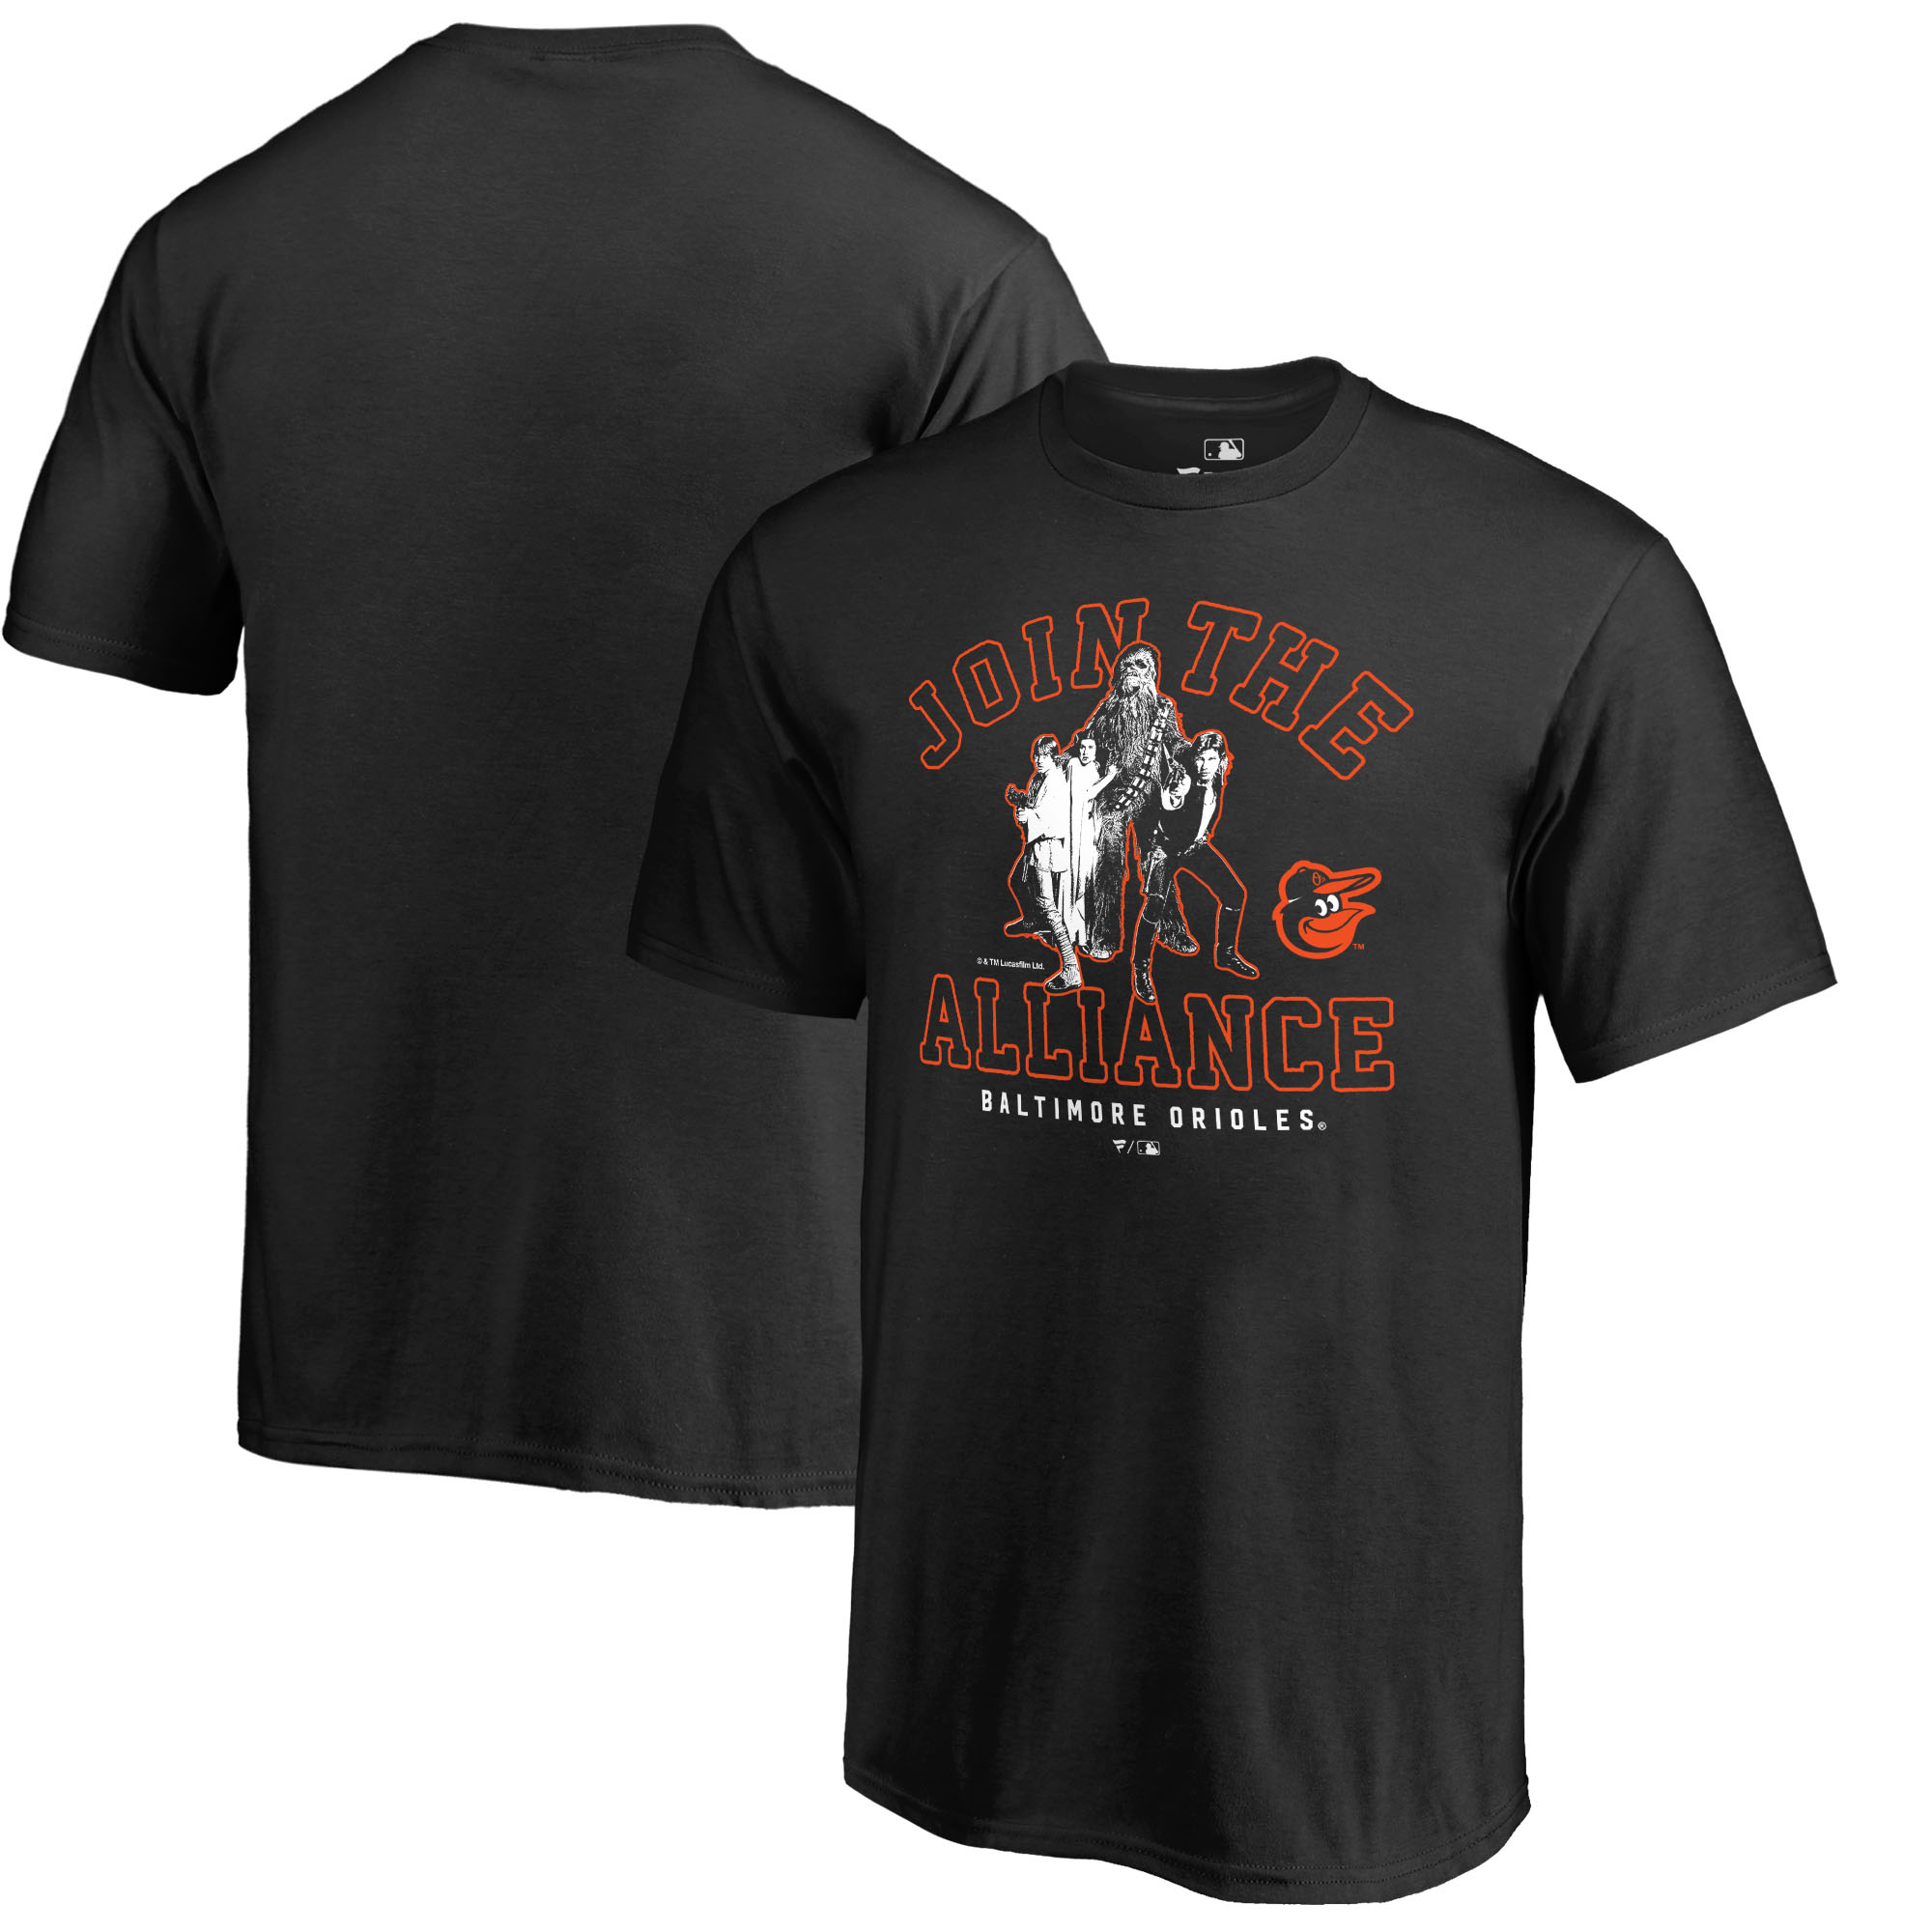 Baltimore Orioles Fanatics Branded Youth MLB Star Wars Join The Alliance T-Shirt - Black